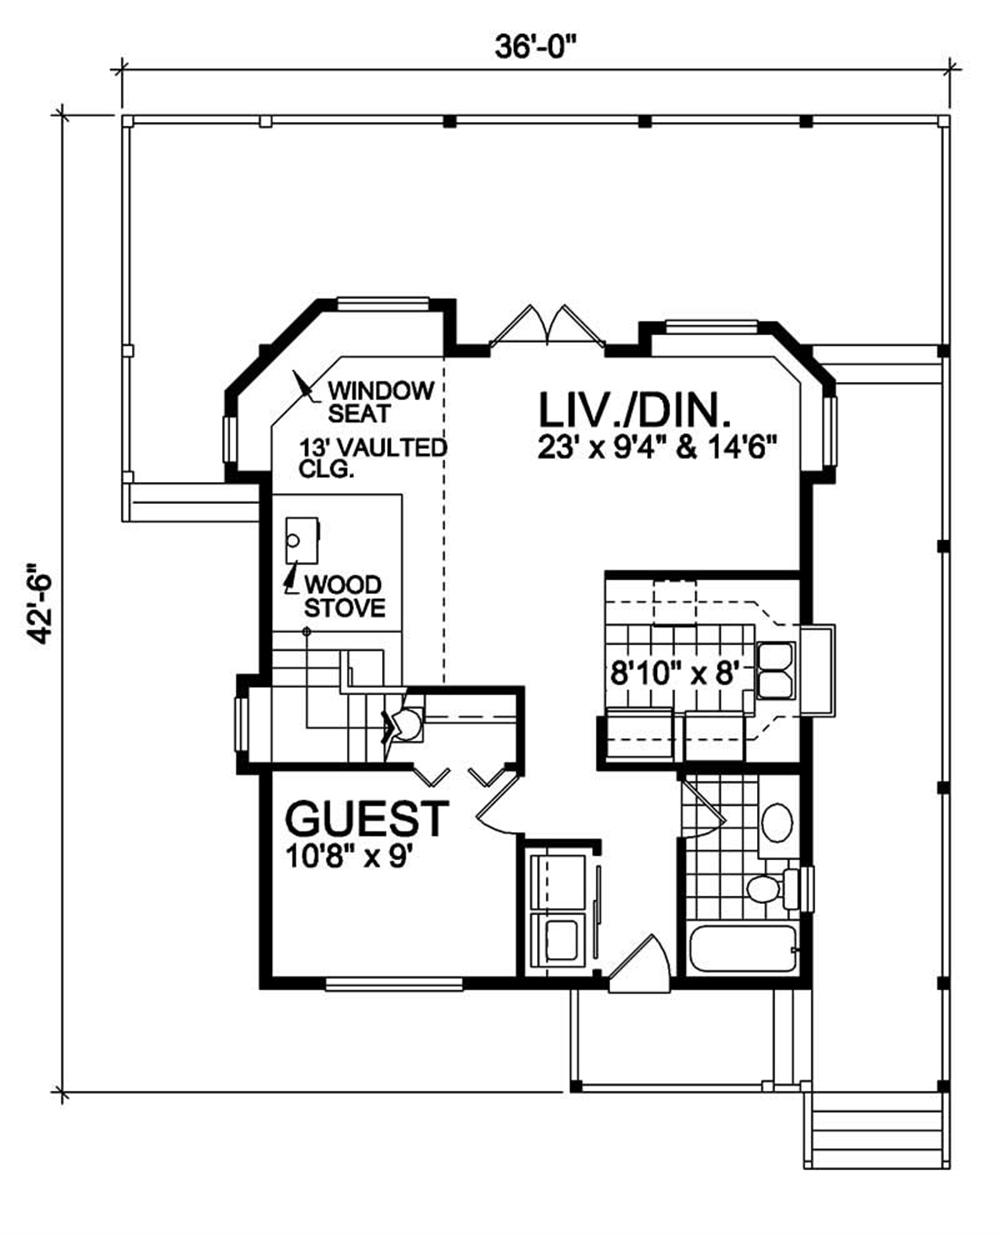 House Plan RS-1154 Main Floor Plan